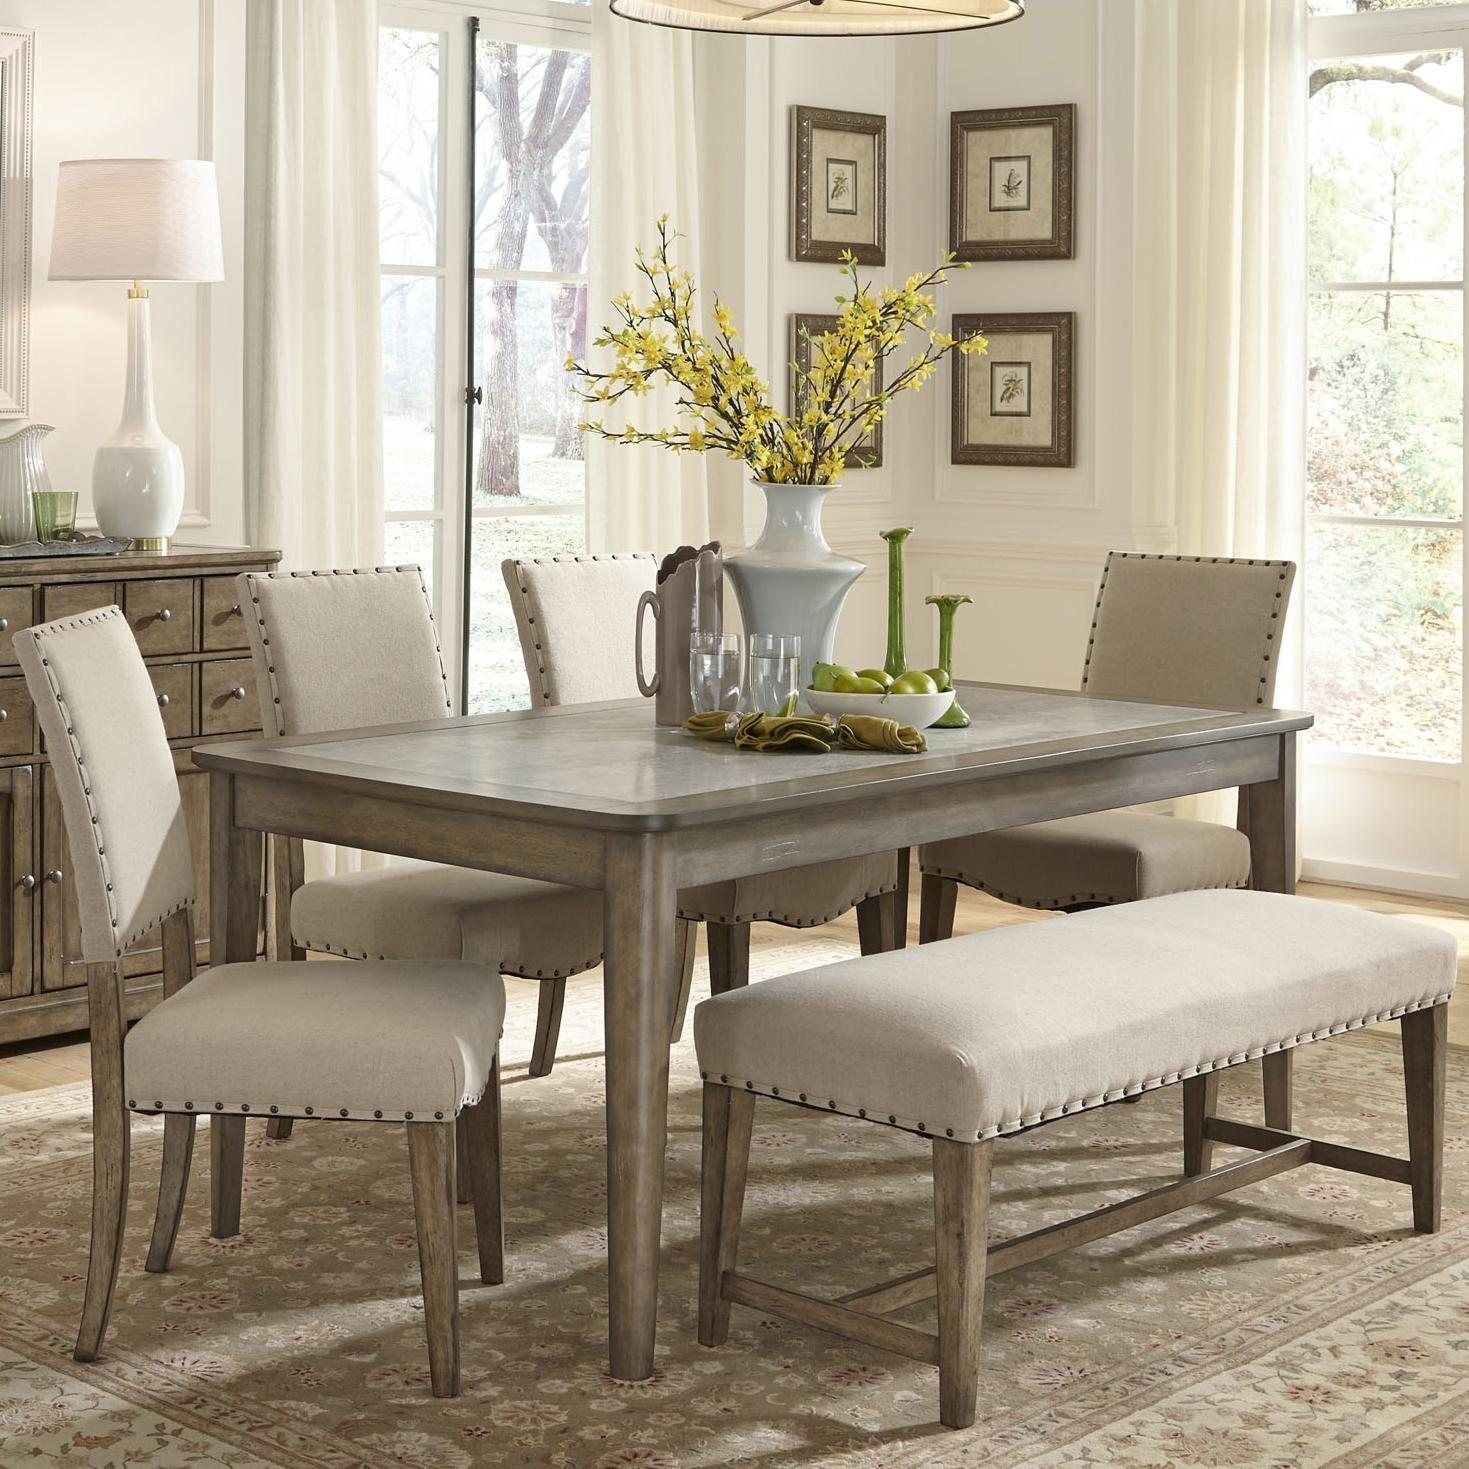 Dining Room Table With Upholstered Bench Home Ideas 2018